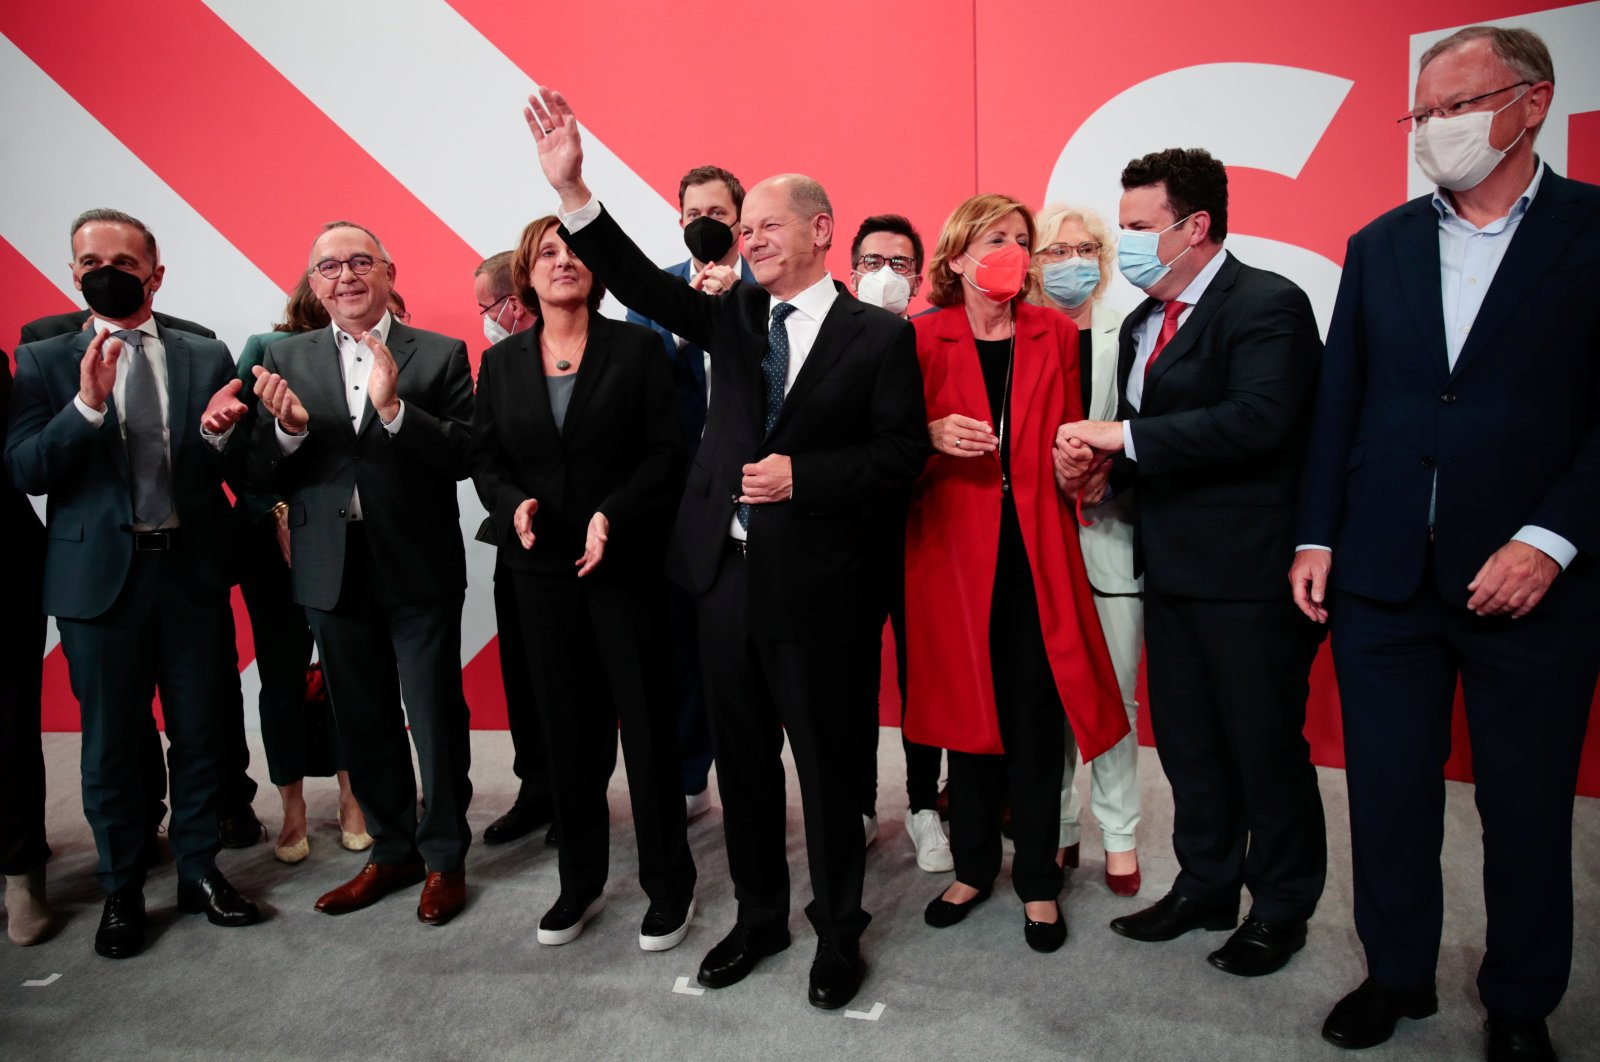 Social Democratic Party (SPD) leader and top candidate for chancellor Olaf Scholz (C), his wife Britta Ernst (C-R), German Labor Minister Hubertus Heil  (2nd R), Rhineland-Palatinate State Premier Malu Dreyer (C-L), Social Democratic Party (SPD) secretary-general Lars Klingbeil (rear C), German Foreign Minister Heiko Maas, and Lower Saxony's State Premier Stephan Weil (far right) react after first exit polls for the general elections in Berlin, Germany, Sept. 26, 2021. (Reuters Photo)